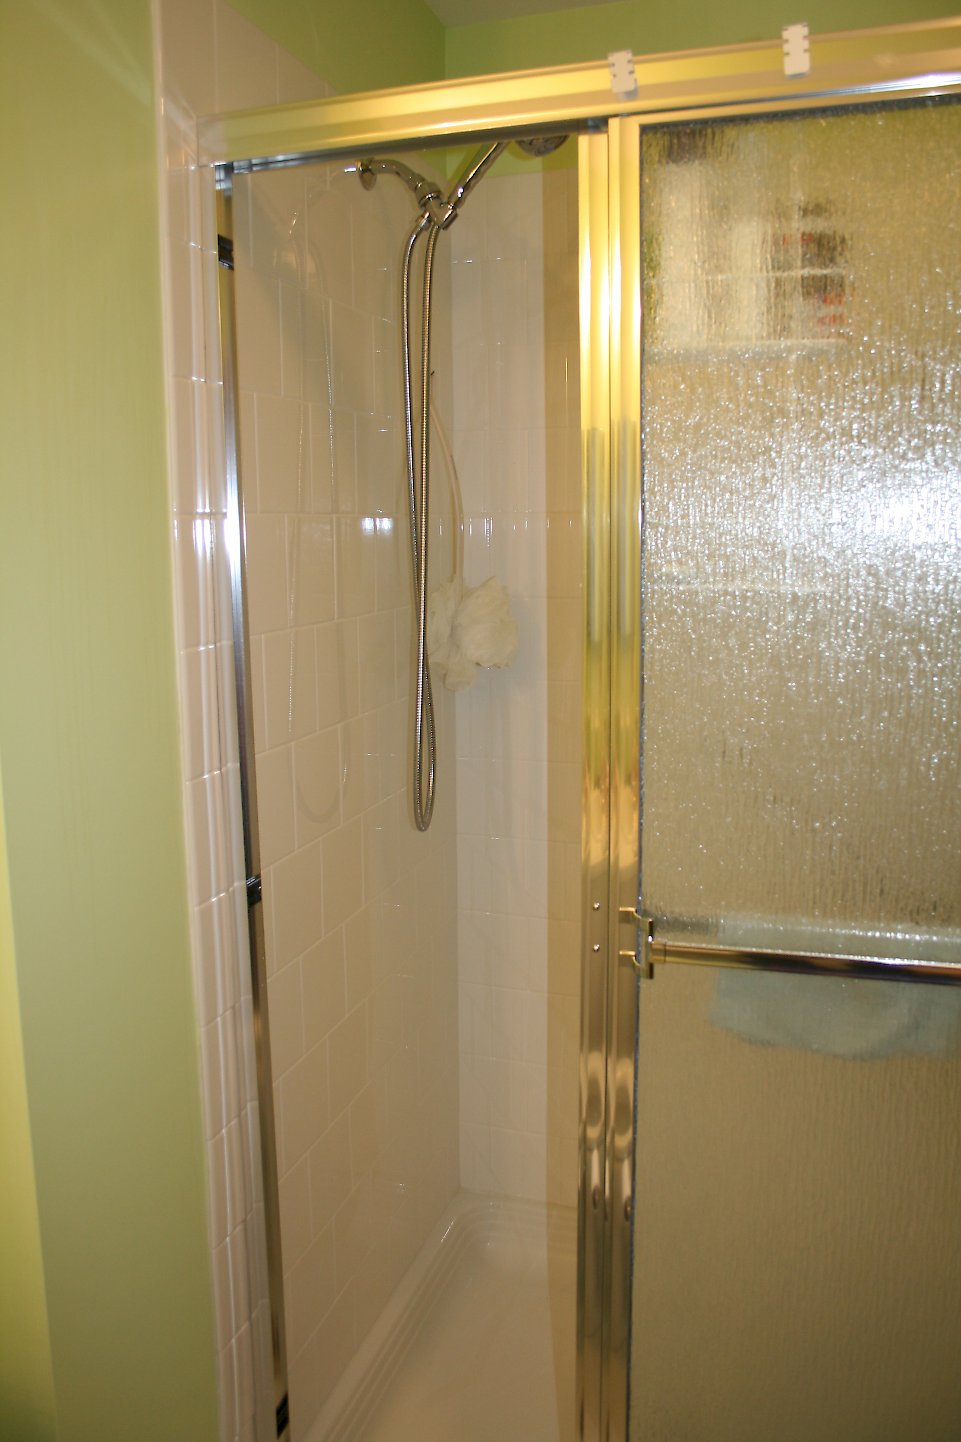 Delta hand shower unit on the main shower wall.